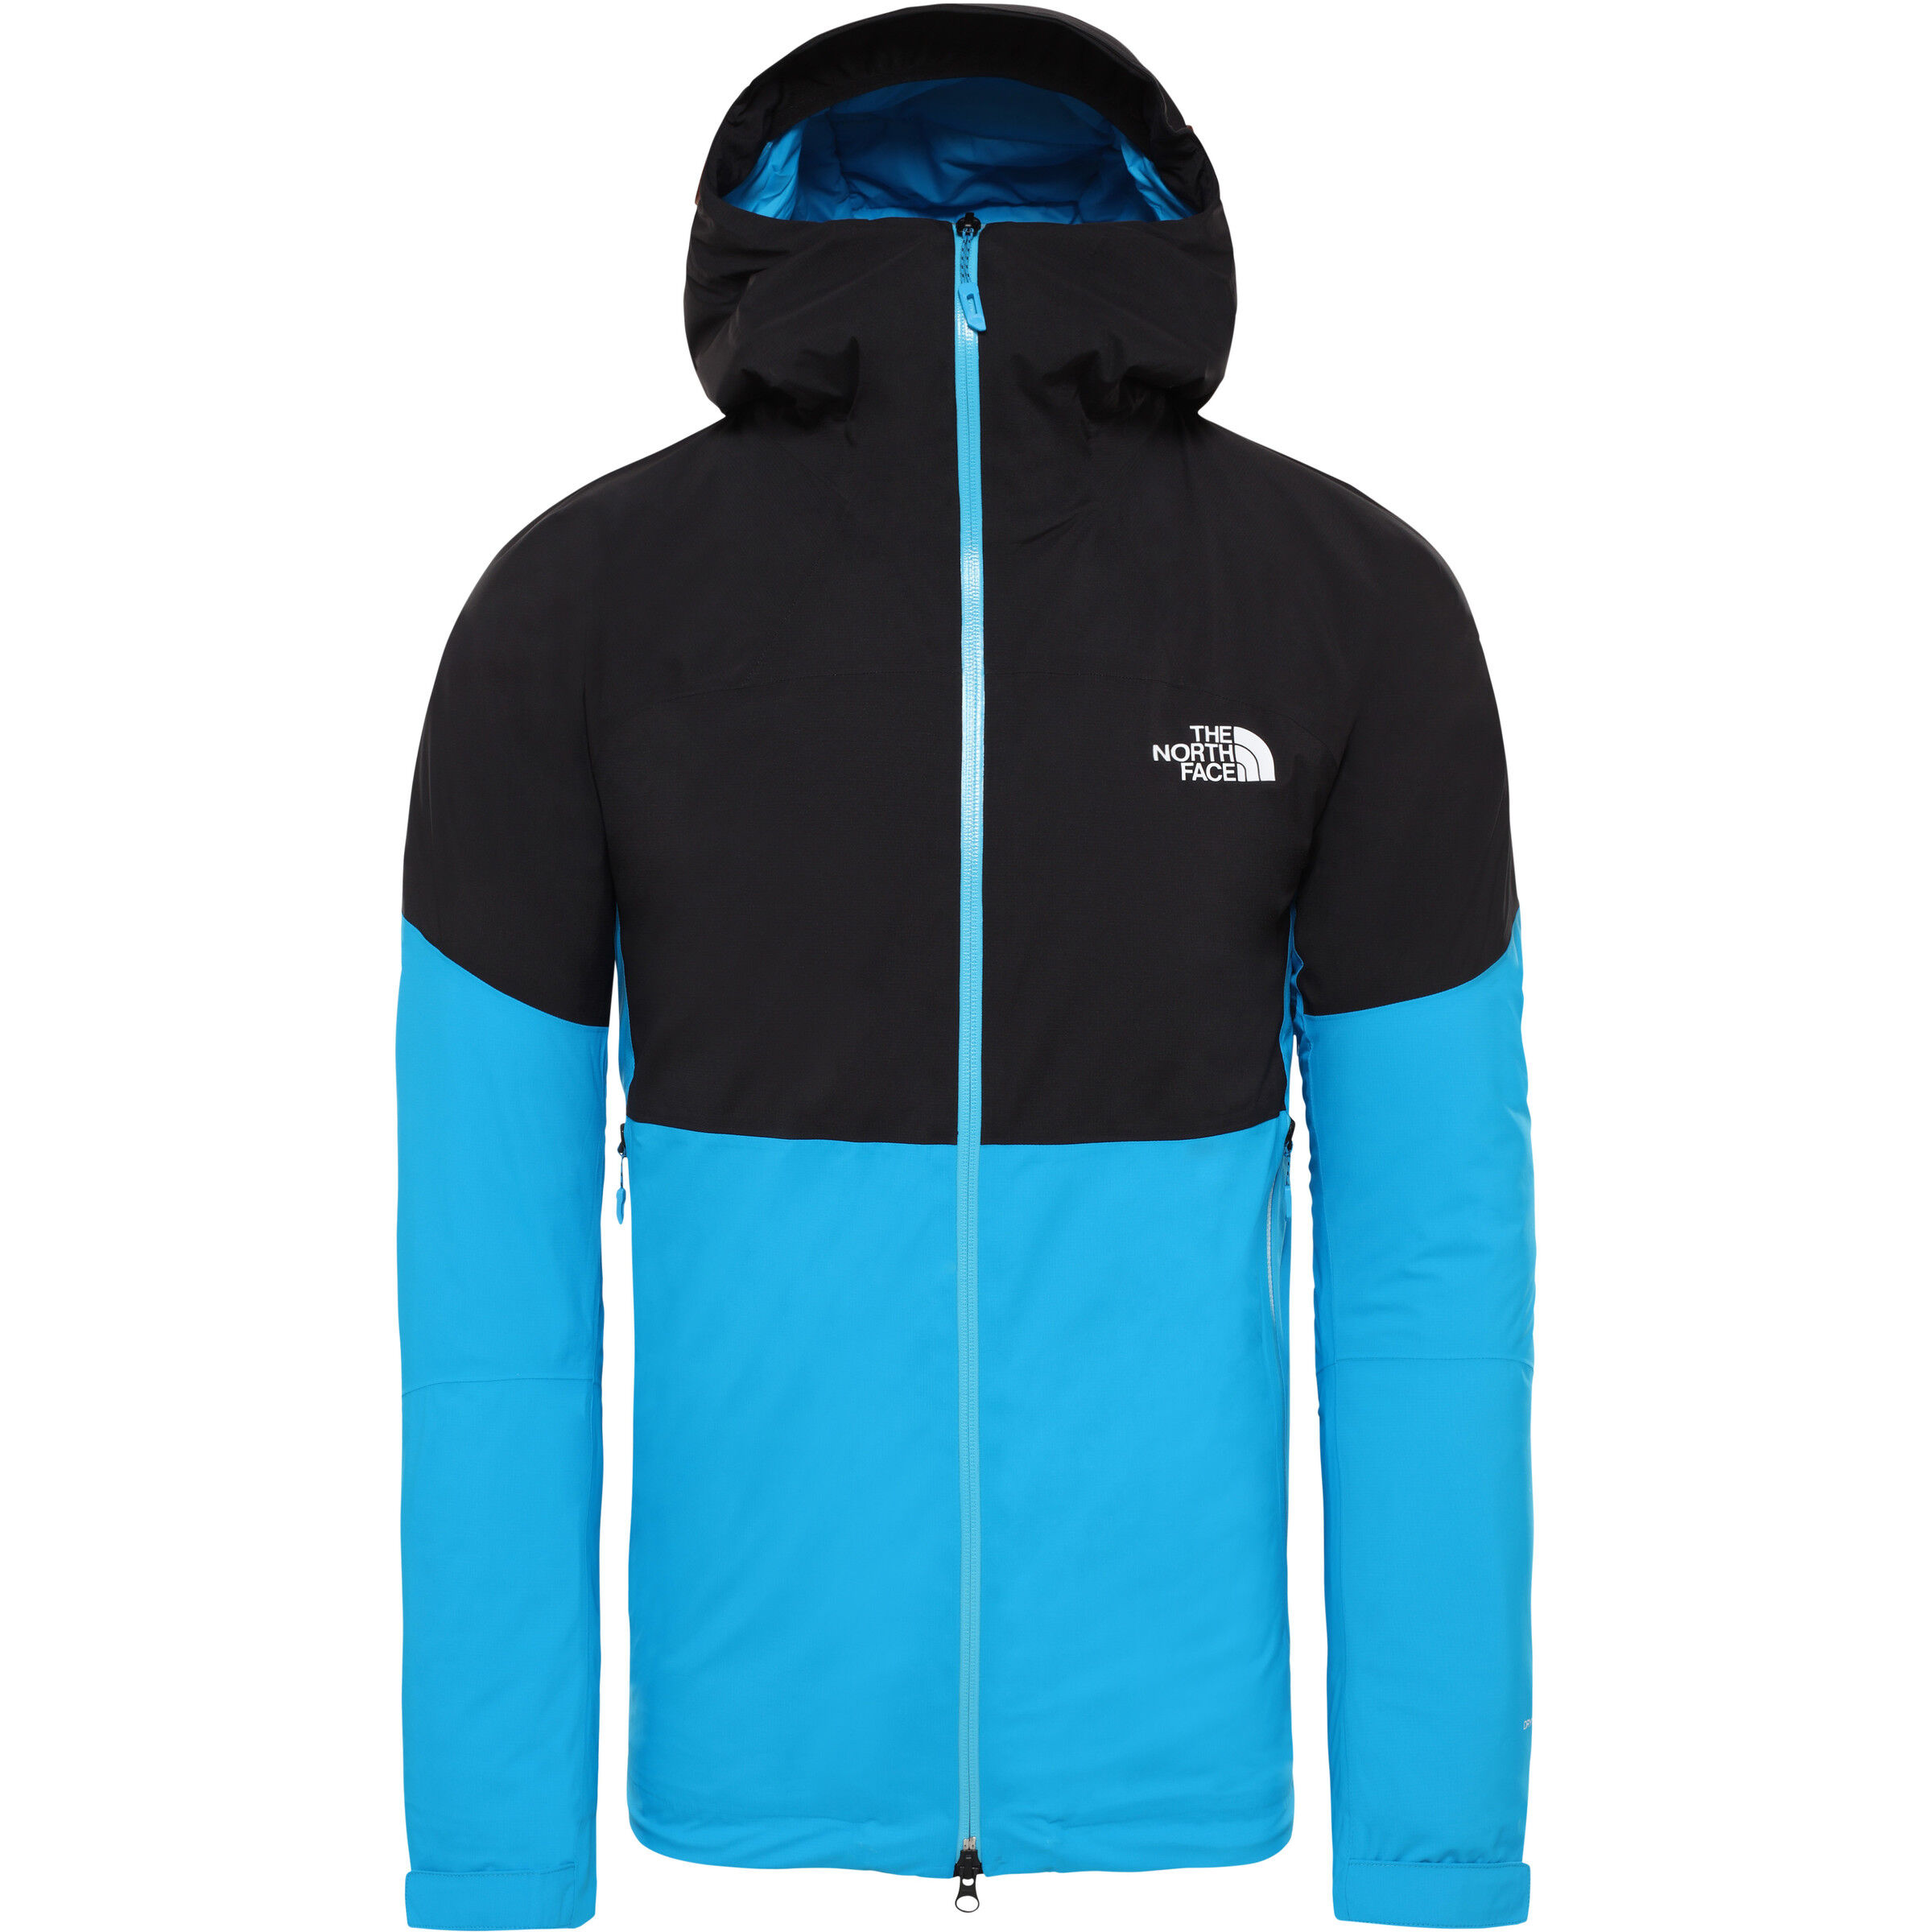 bei The North Face WinterjackeDaunenjackegünstig Face WinterjackeDaunenjackegünstig North The bei vmNwy8Pn0O